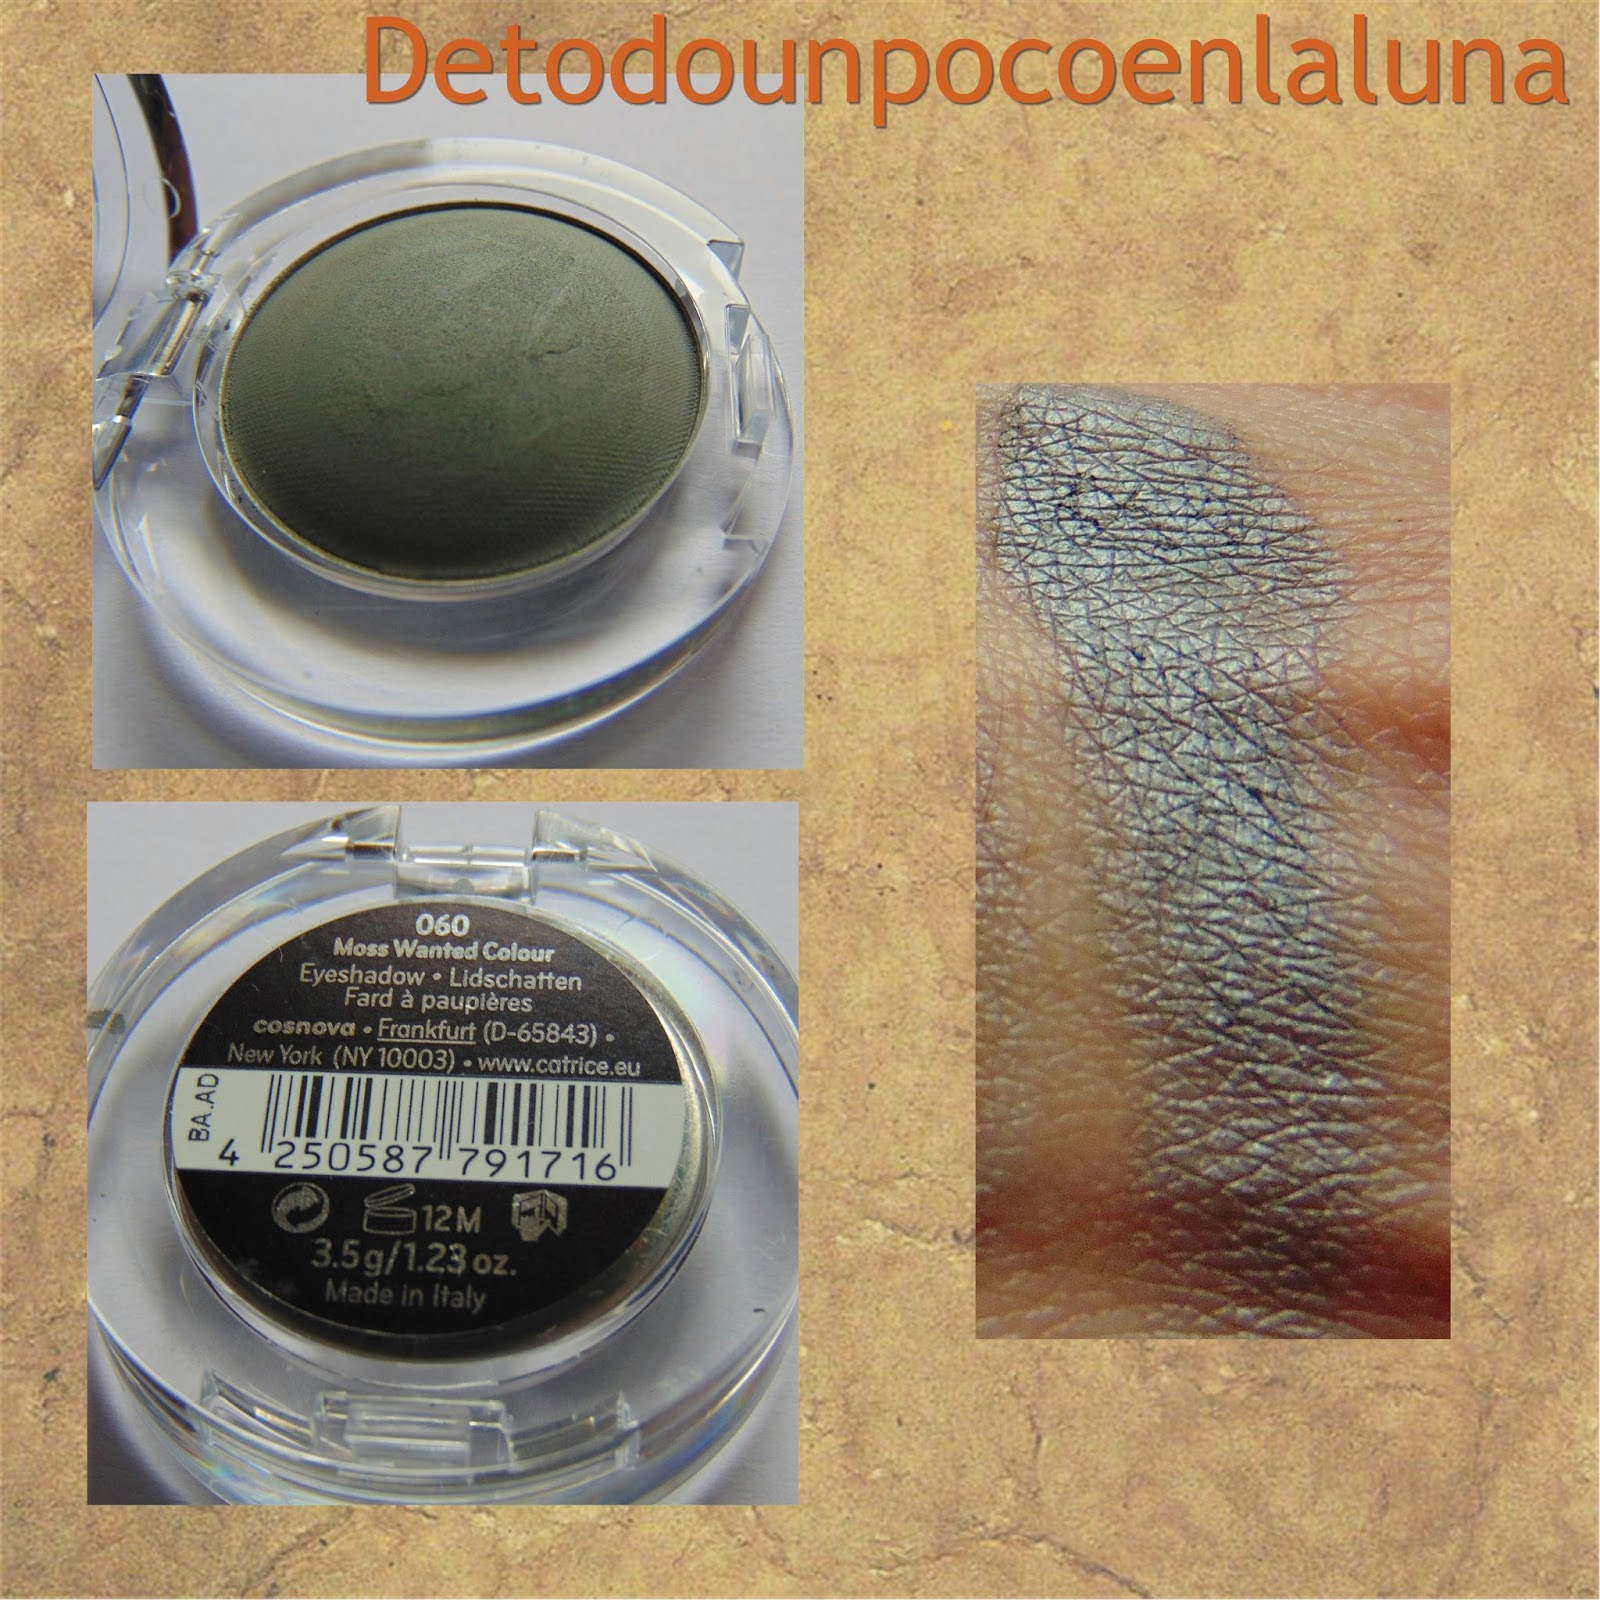 060 Moss Wanted Colour Sombras Velvet Matt Eyeshadow de Catrice